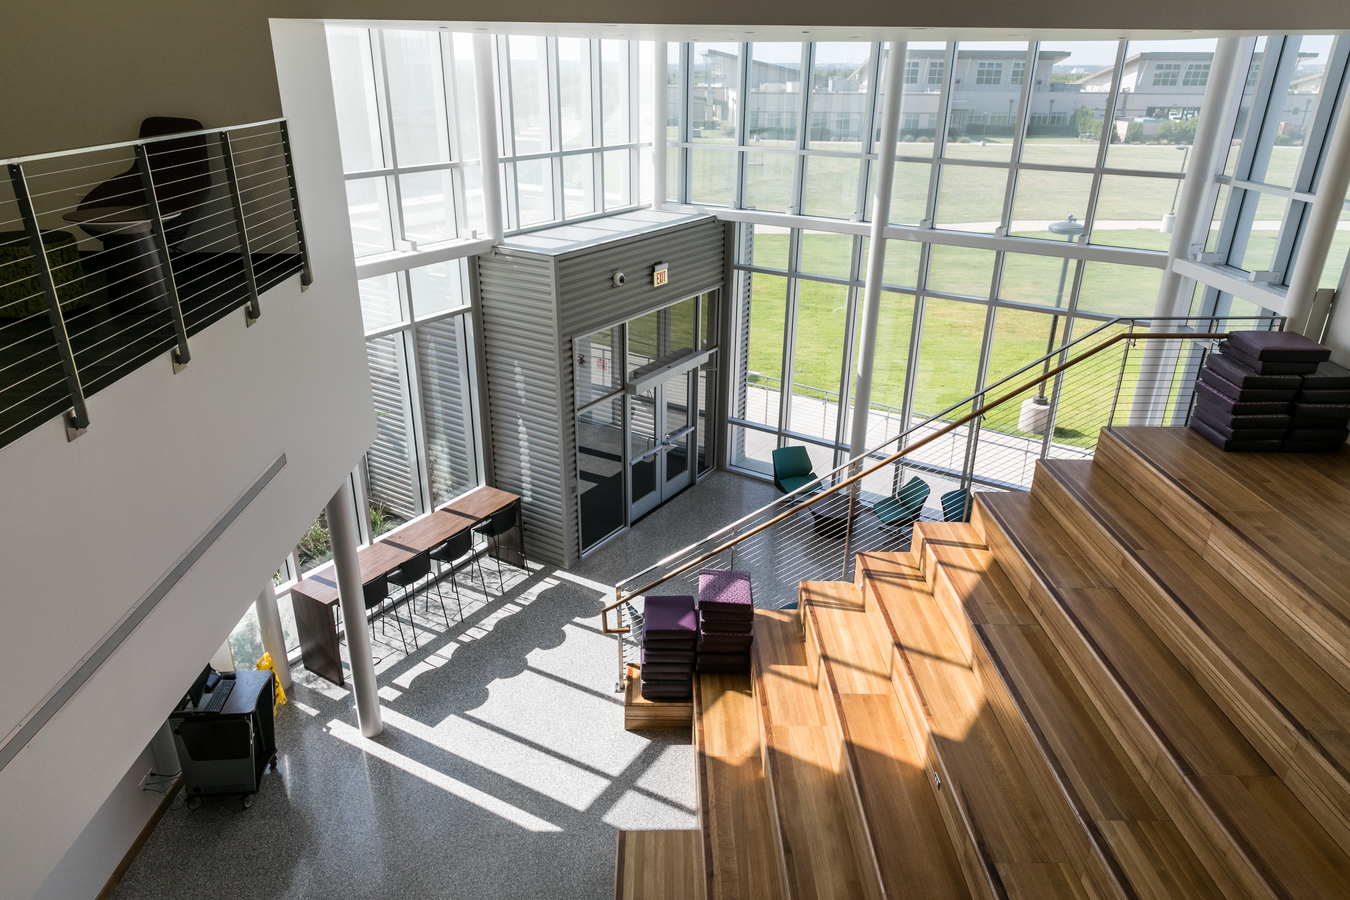 ACC Round Rock Campus, Building 8000, social staircase.